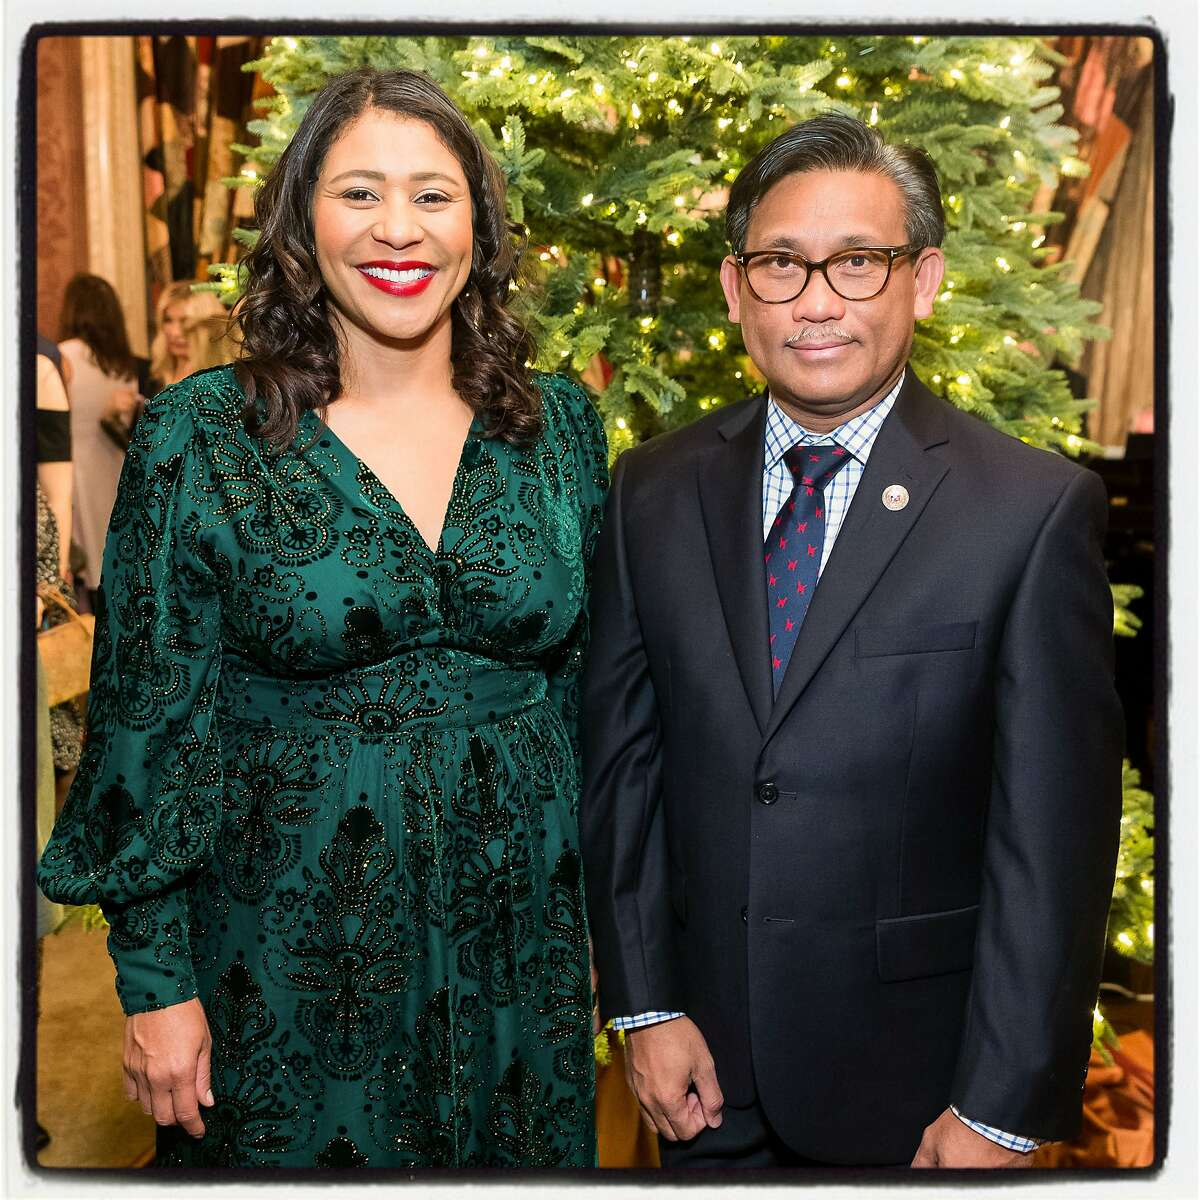 Mayor London Breed and Philippines Consul General Henry Bensurto, dean of the Consular Corps, at the Protocol Holiday Party. Dec. 4, 2019.